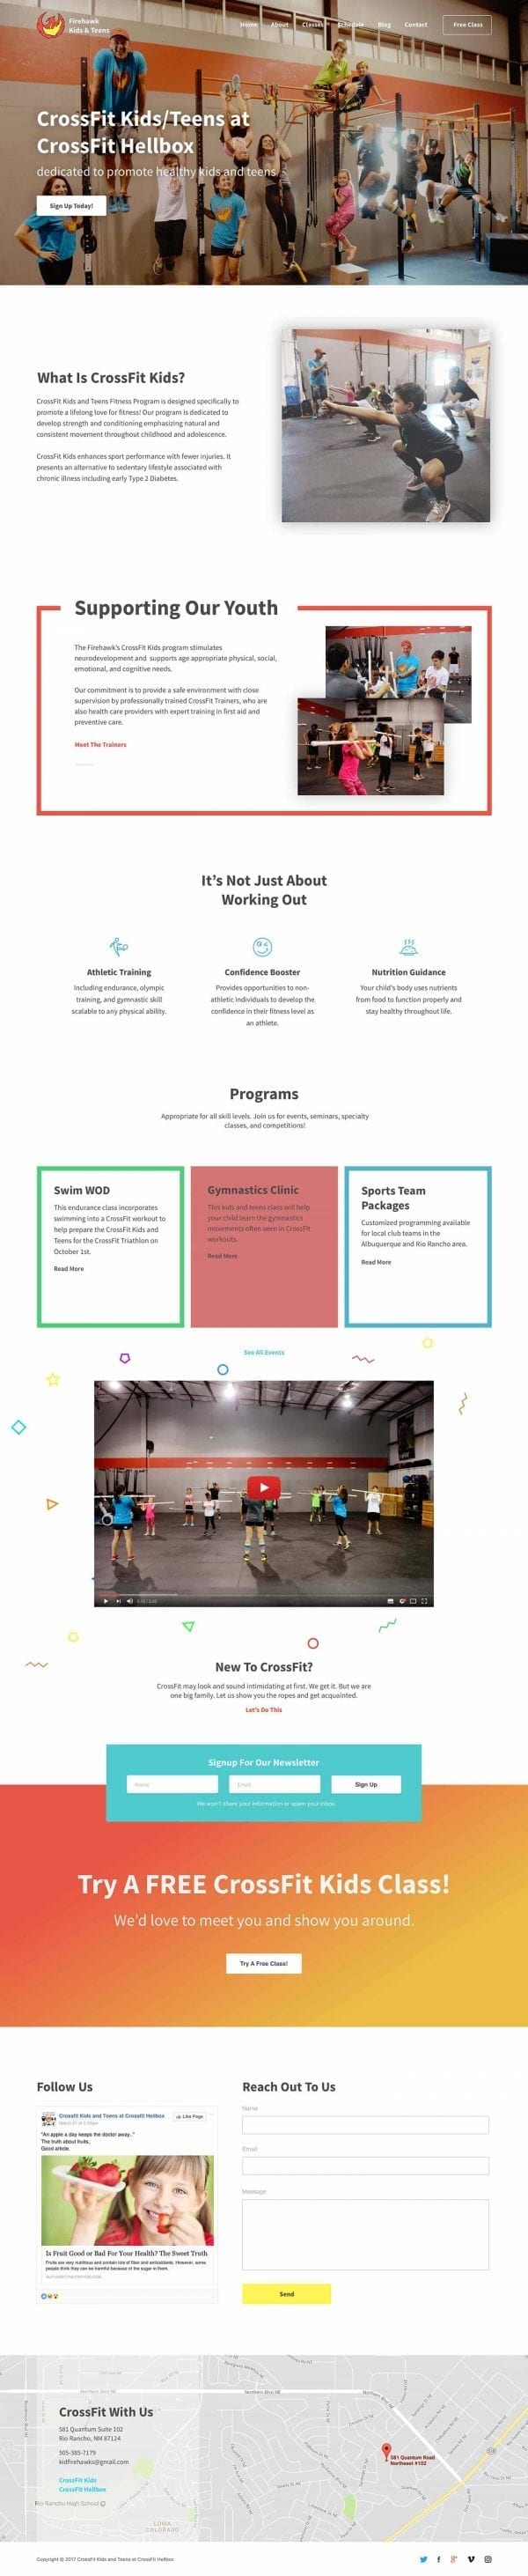 Screenshot of a custom website design and development for Firehawks Kids/Teens Crossfit